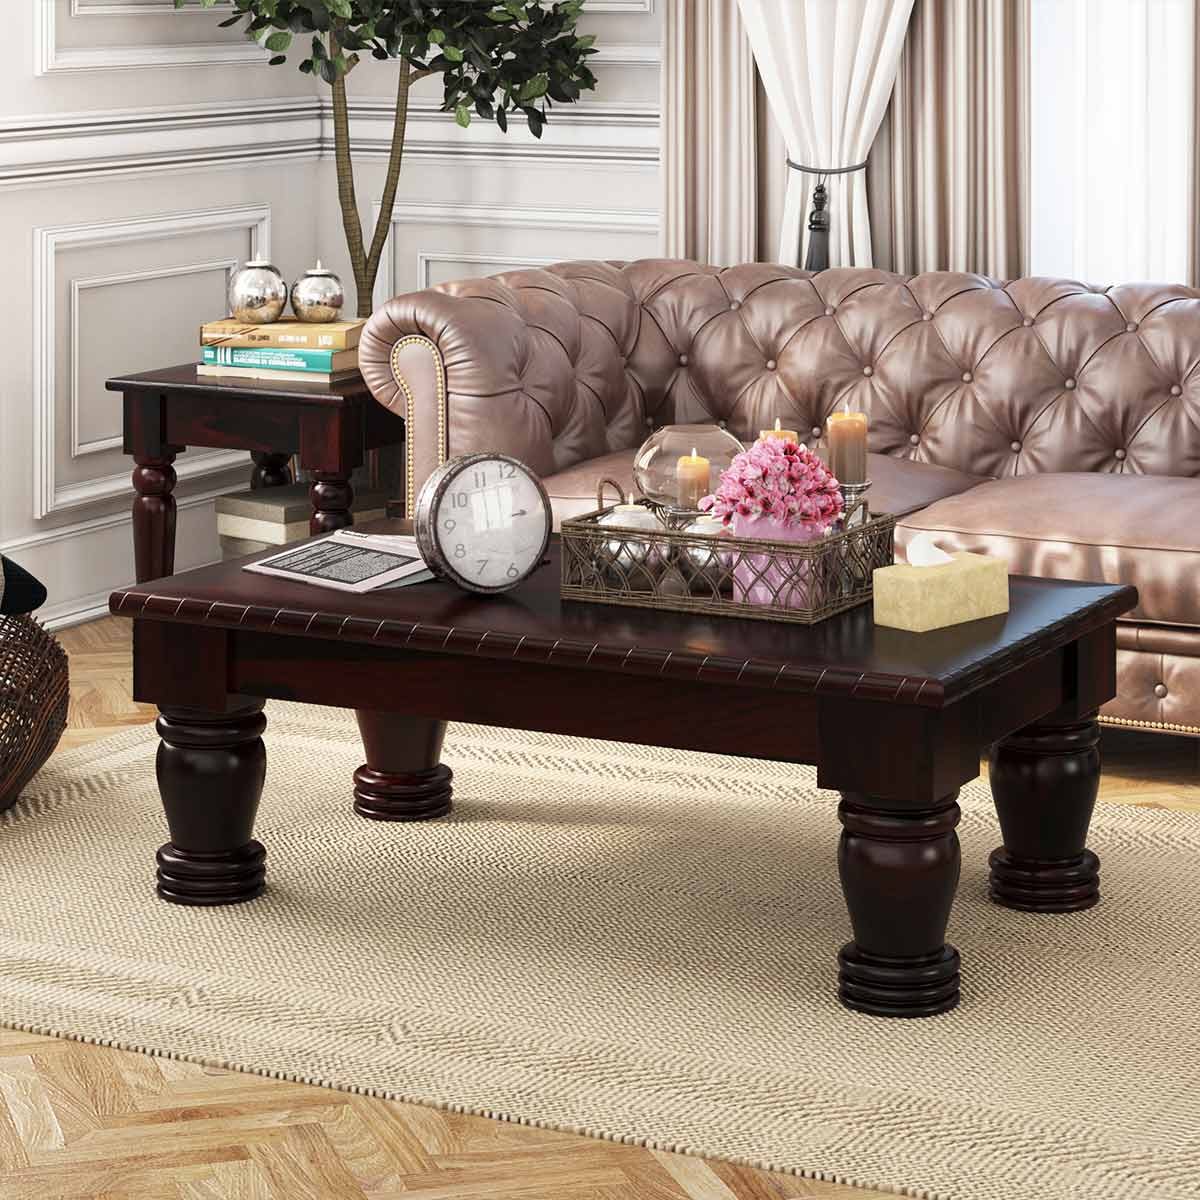 Vallecito Country Style Rustic Solid Wood Large Coffee Table